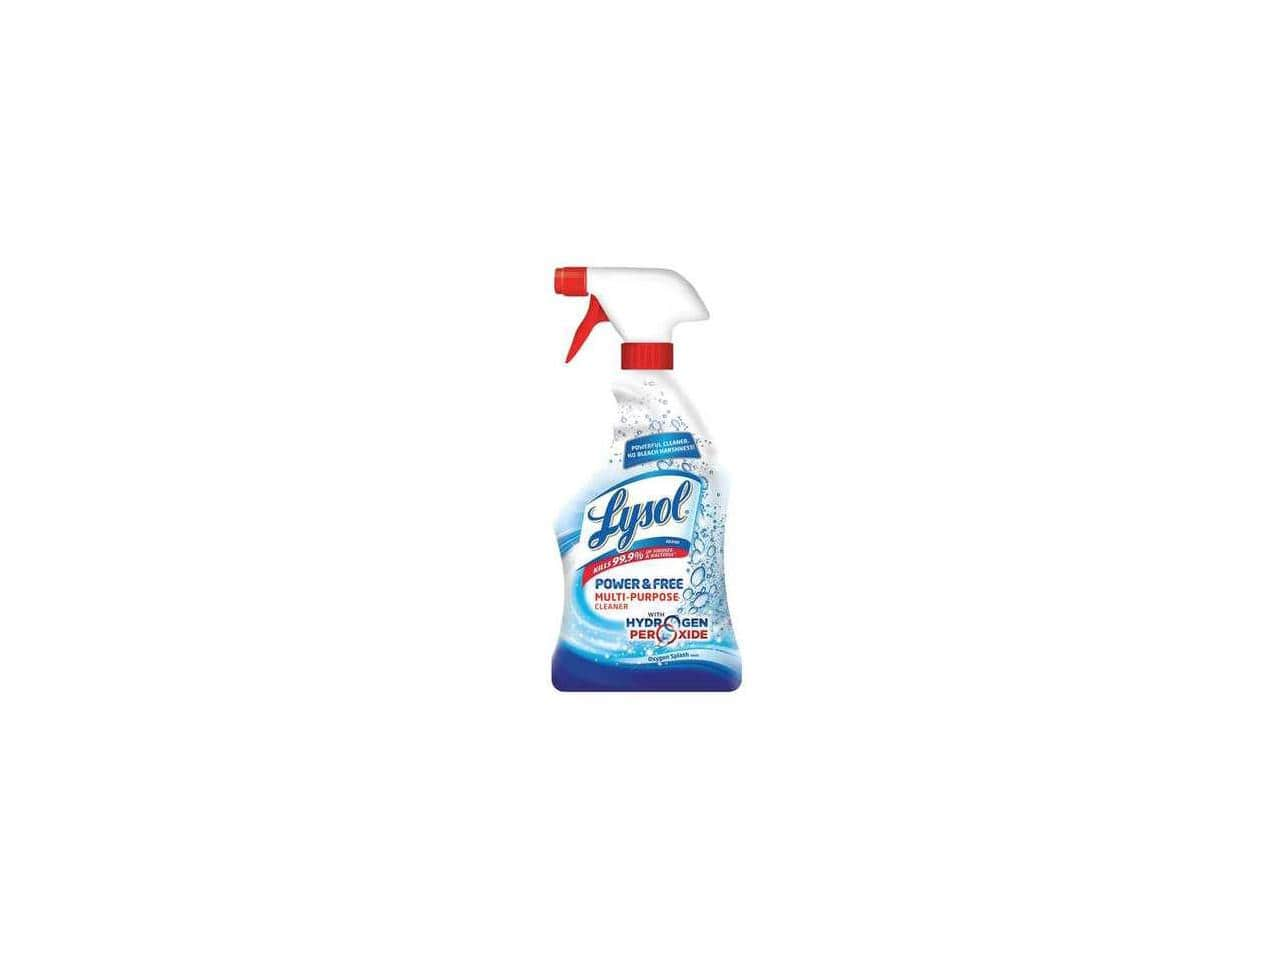 Newegg: 12-Pack LYSOL Multi-Cleaner 22 oz. Oxygen Splash ($4.33 each) - $51.99 Shipped